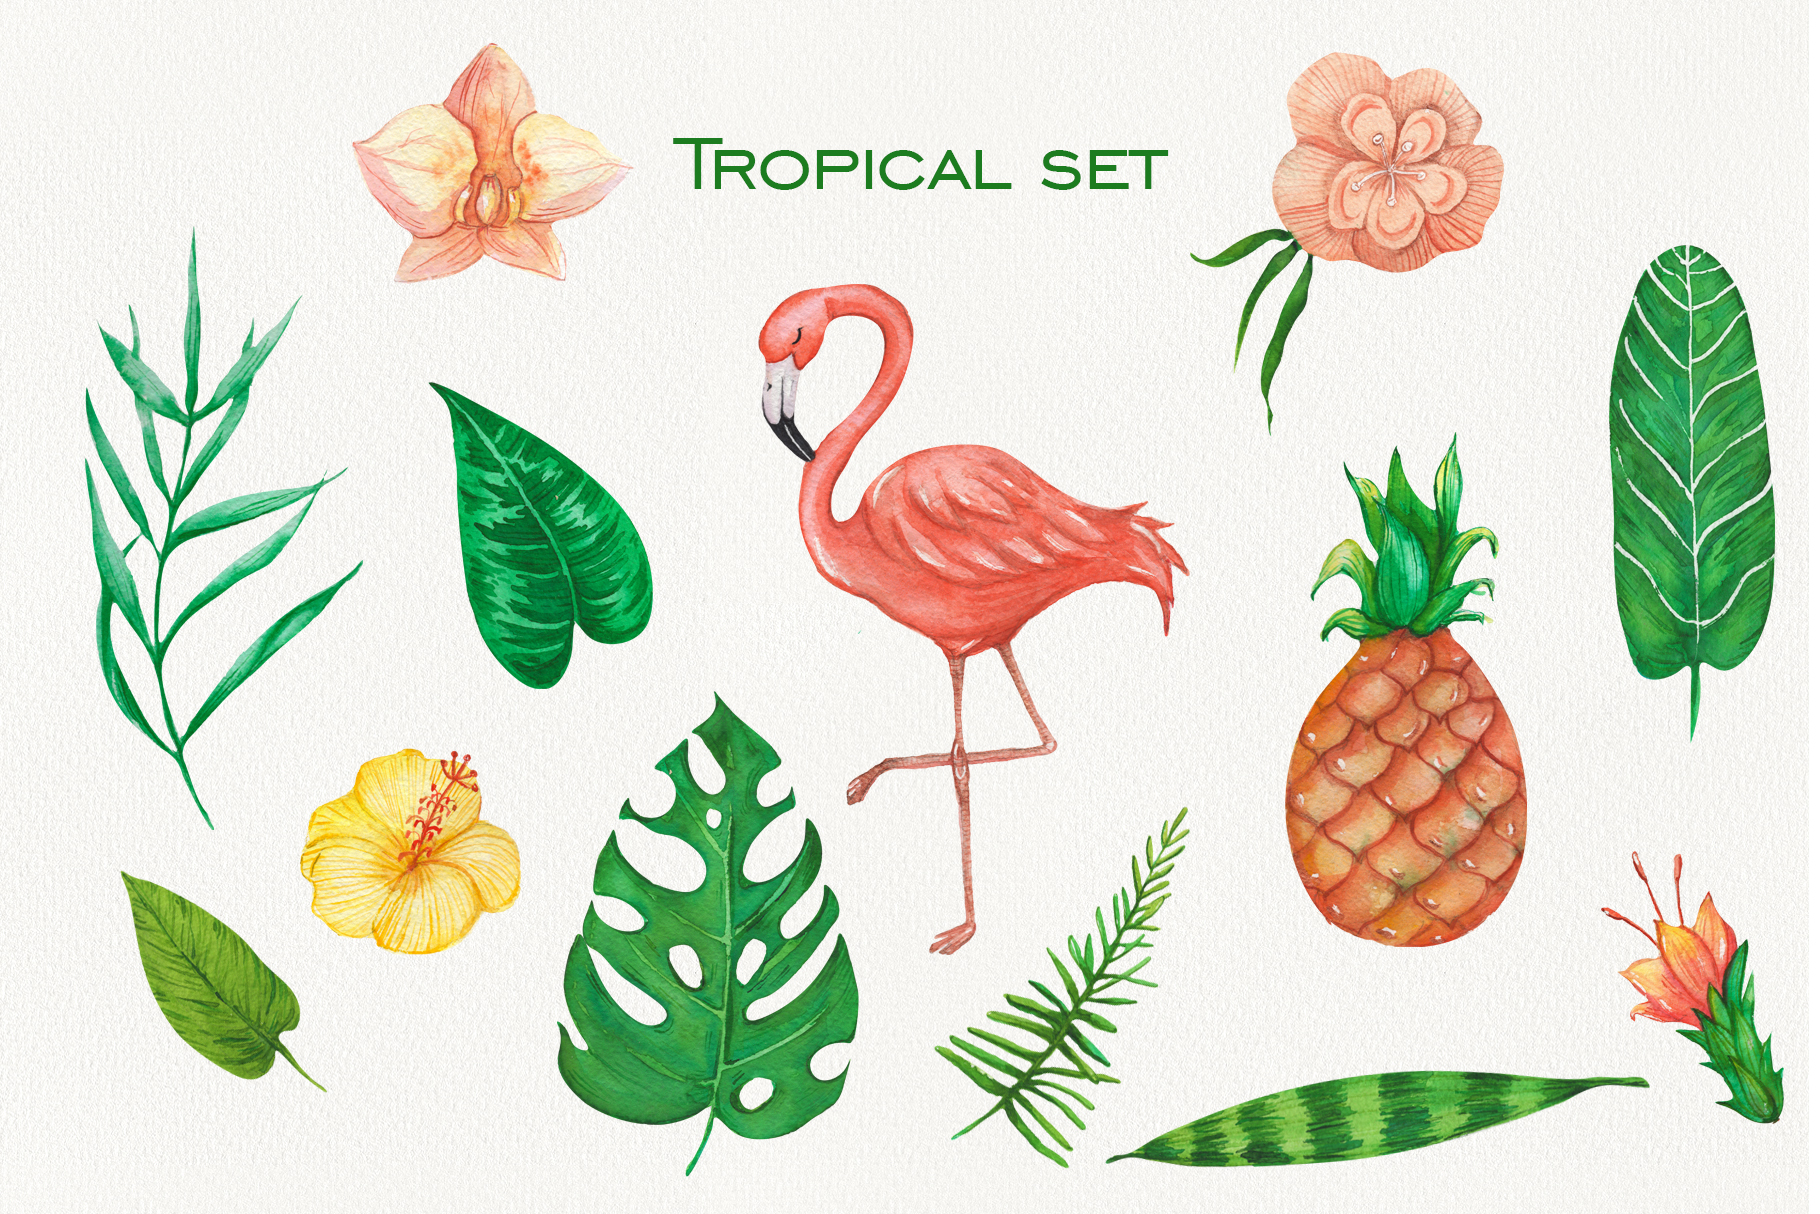 Tropical set of watercolor elements with flamingo example image 4